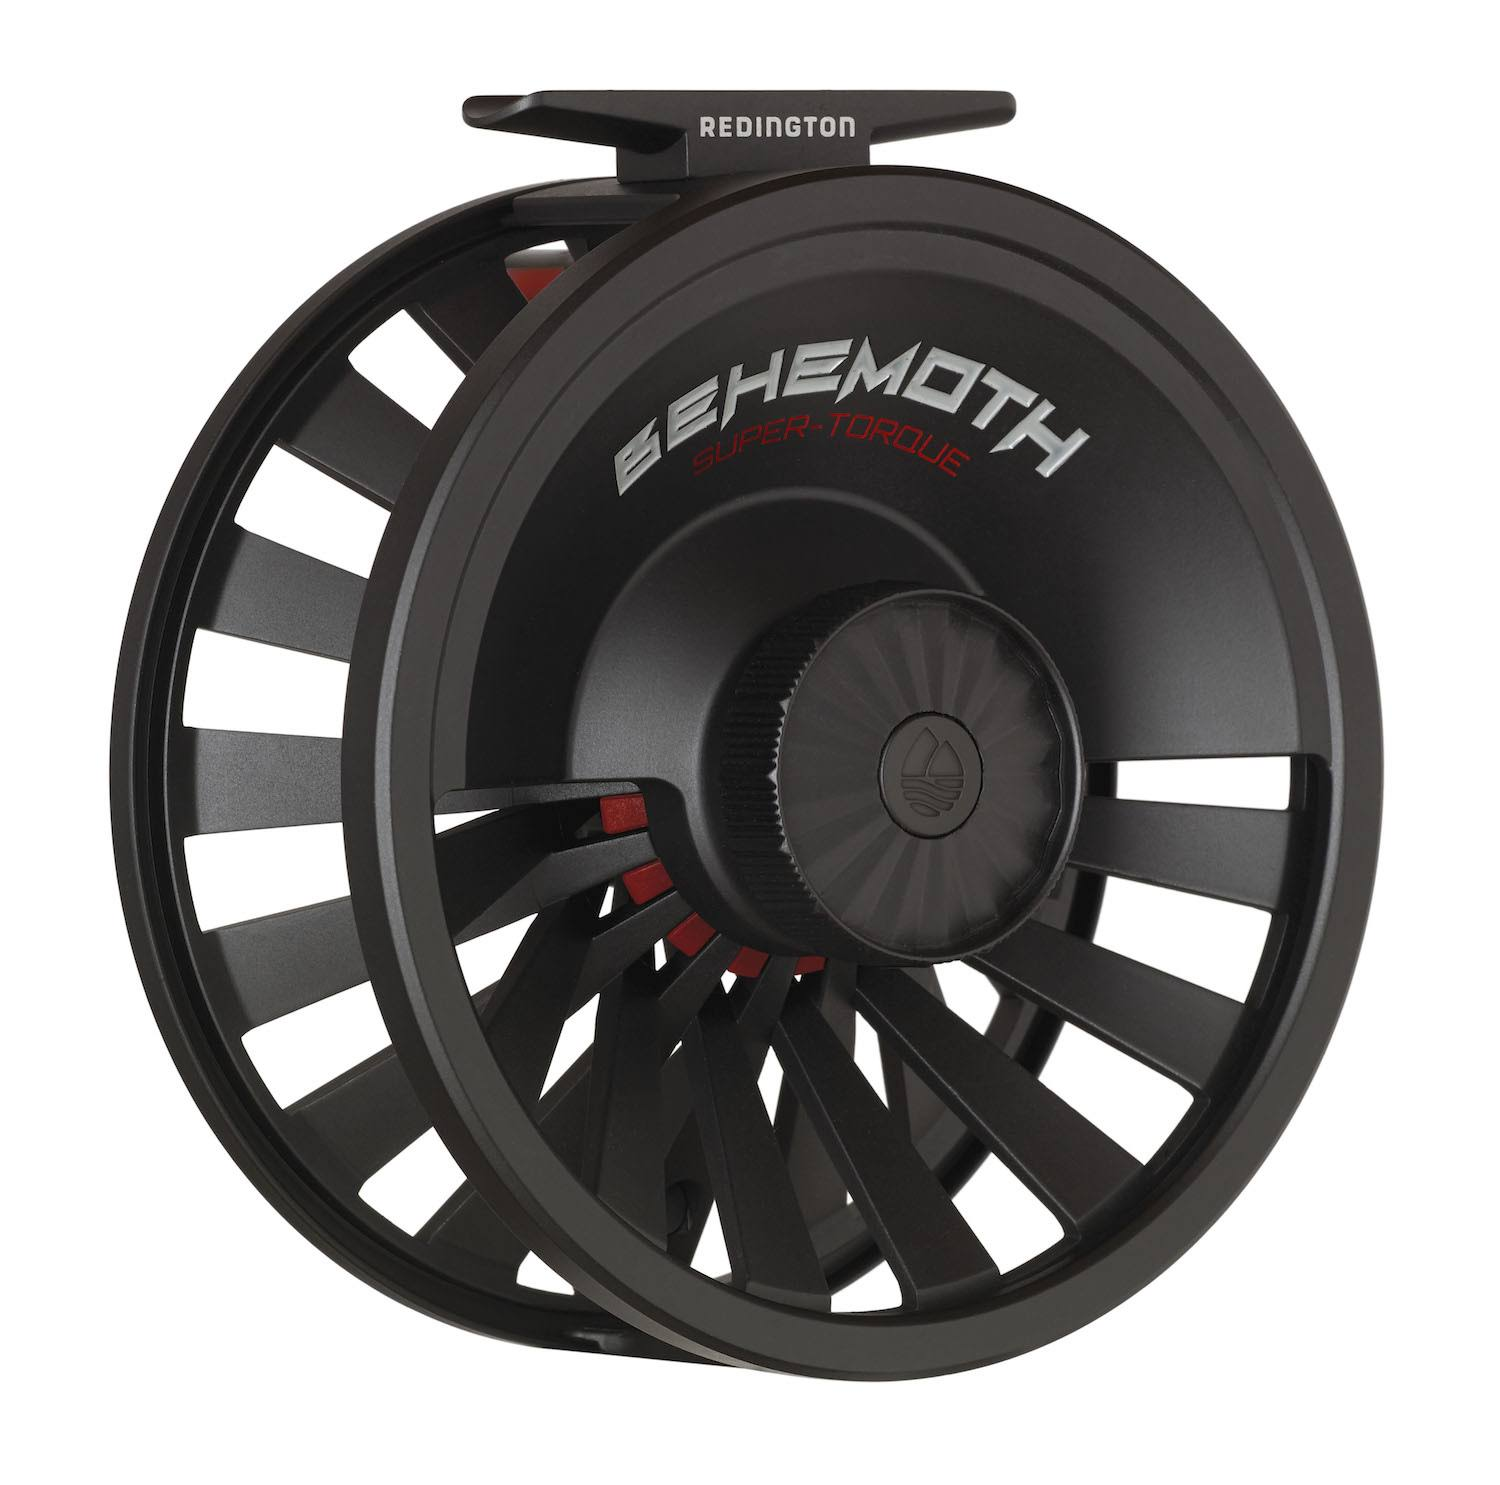 Redington Fly Fishing Behemoth Reel - Black, 9/10